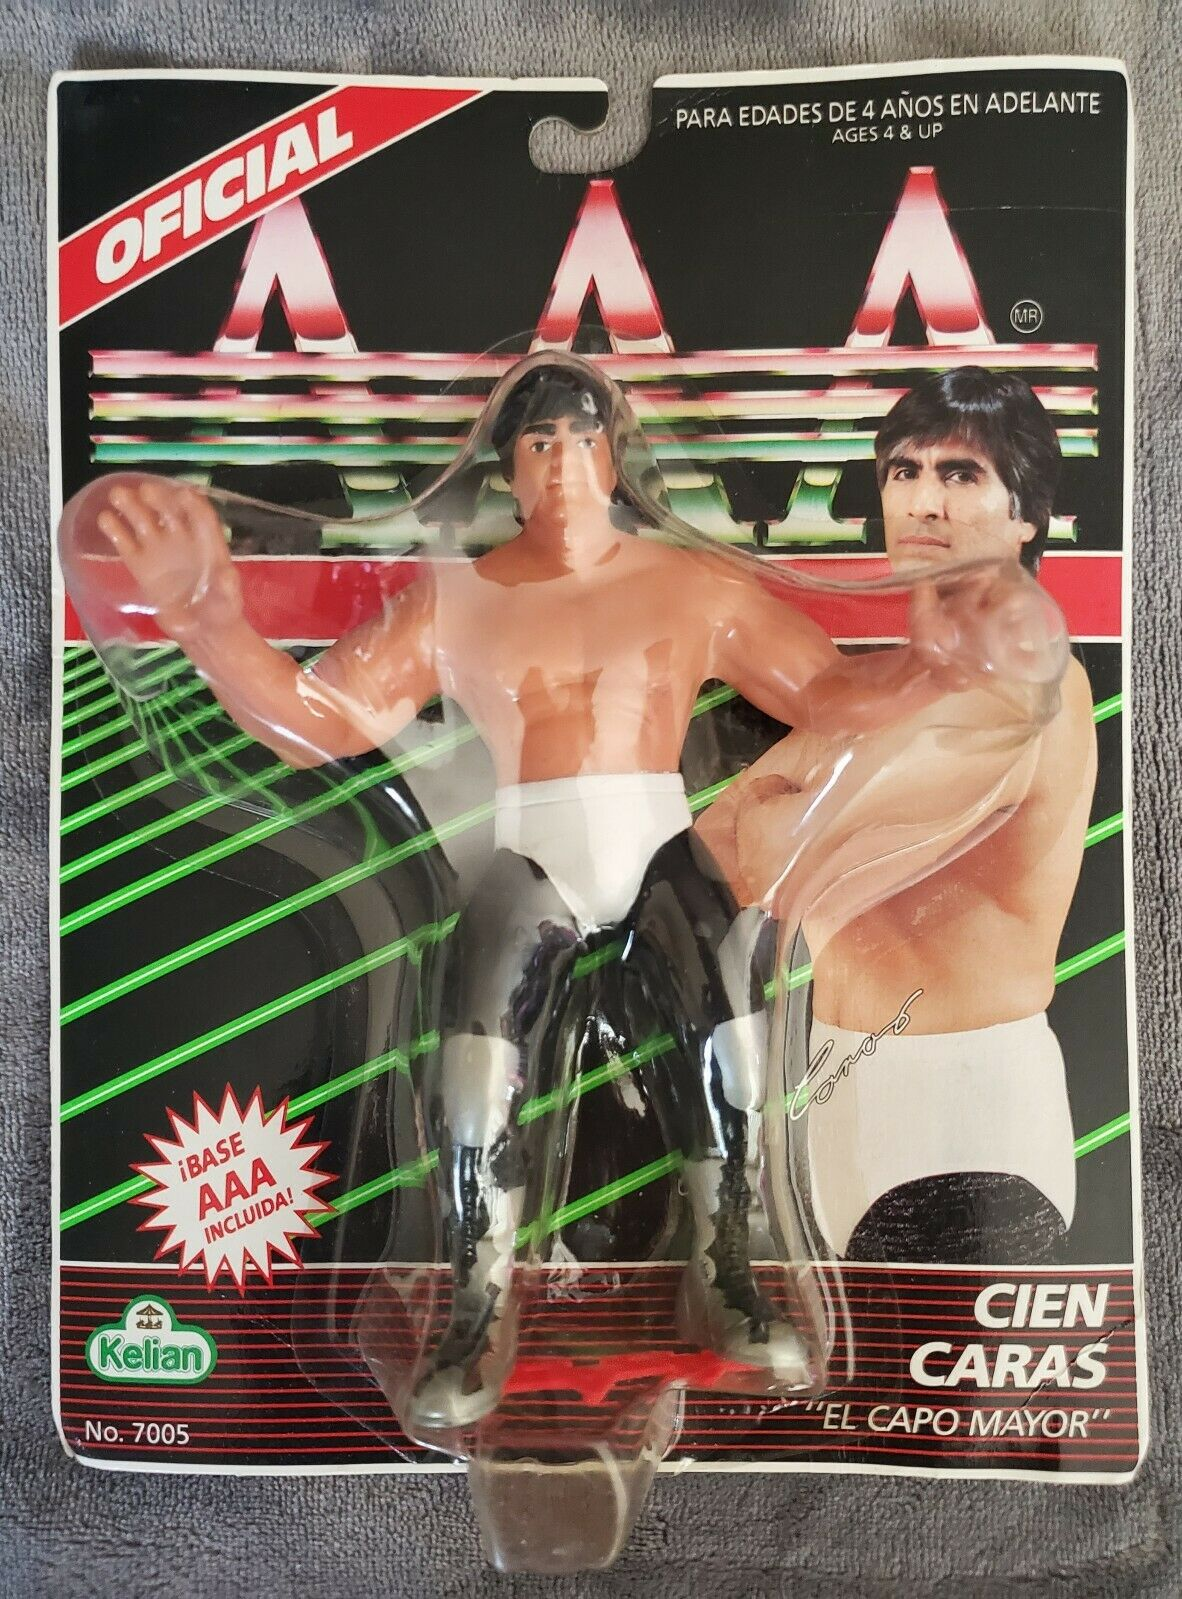 KELIAN CIEN autoAS AAA MEXICAN WRESTLING LUCHA LIBRE cifra VINTAGE  SEALED RARE  centro commerciale online integrato professionale